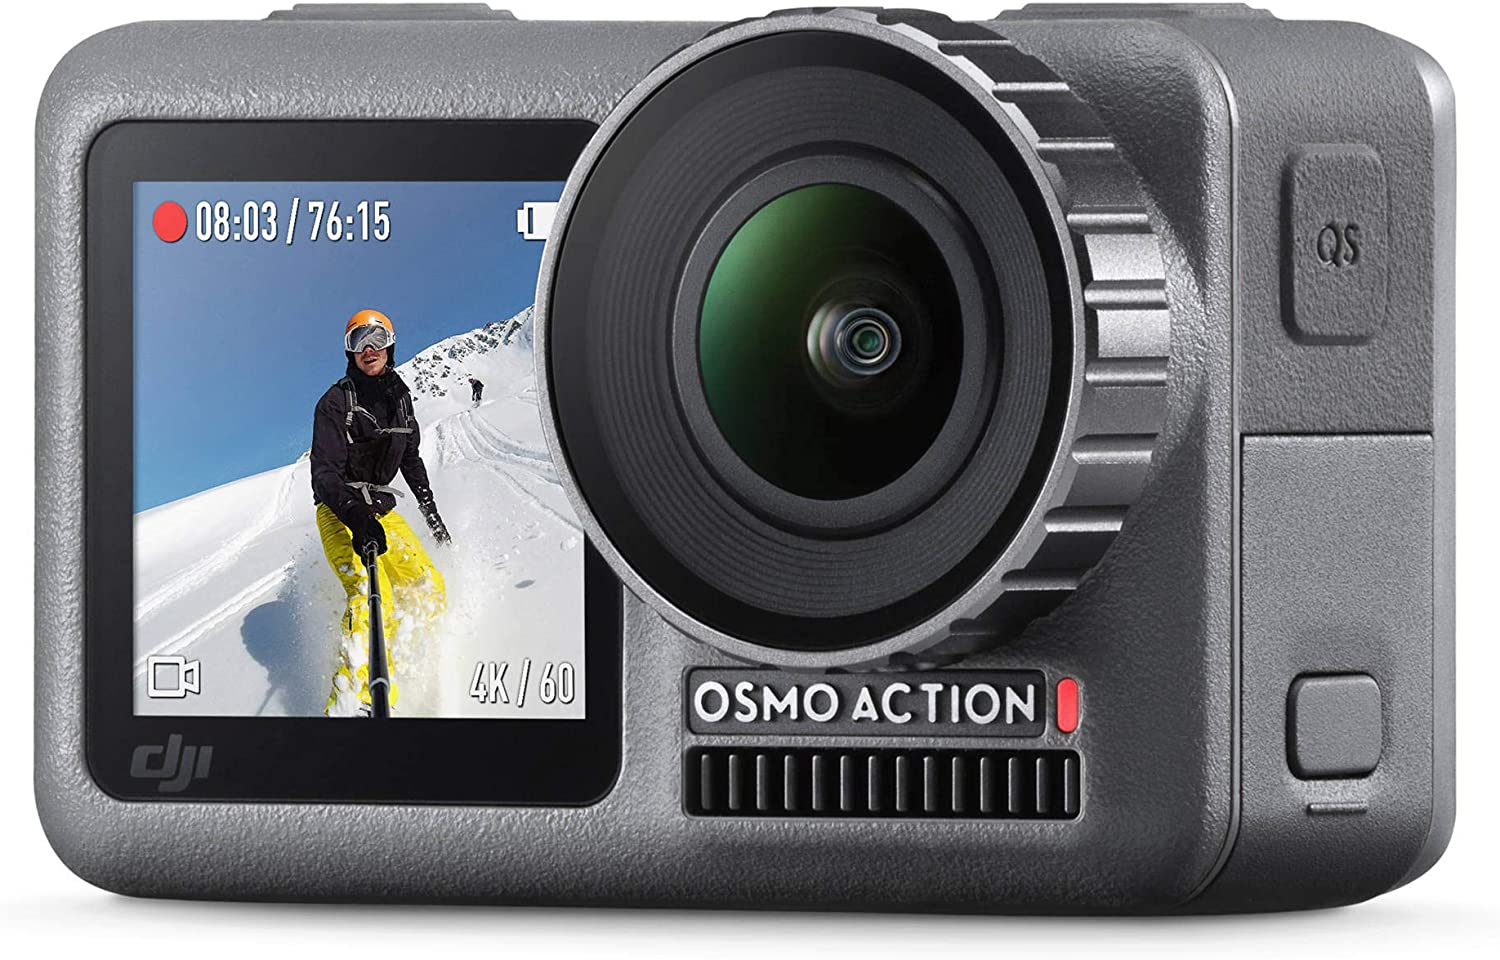 PGYTECH Osmo Action Camera Universal Mount to 1//4 PGYTECH OSMO Action Camera Battery Adhesive Frame Mount Hand Grip /& Tripod Compatible with DJI OSMO Action Camera Accessories